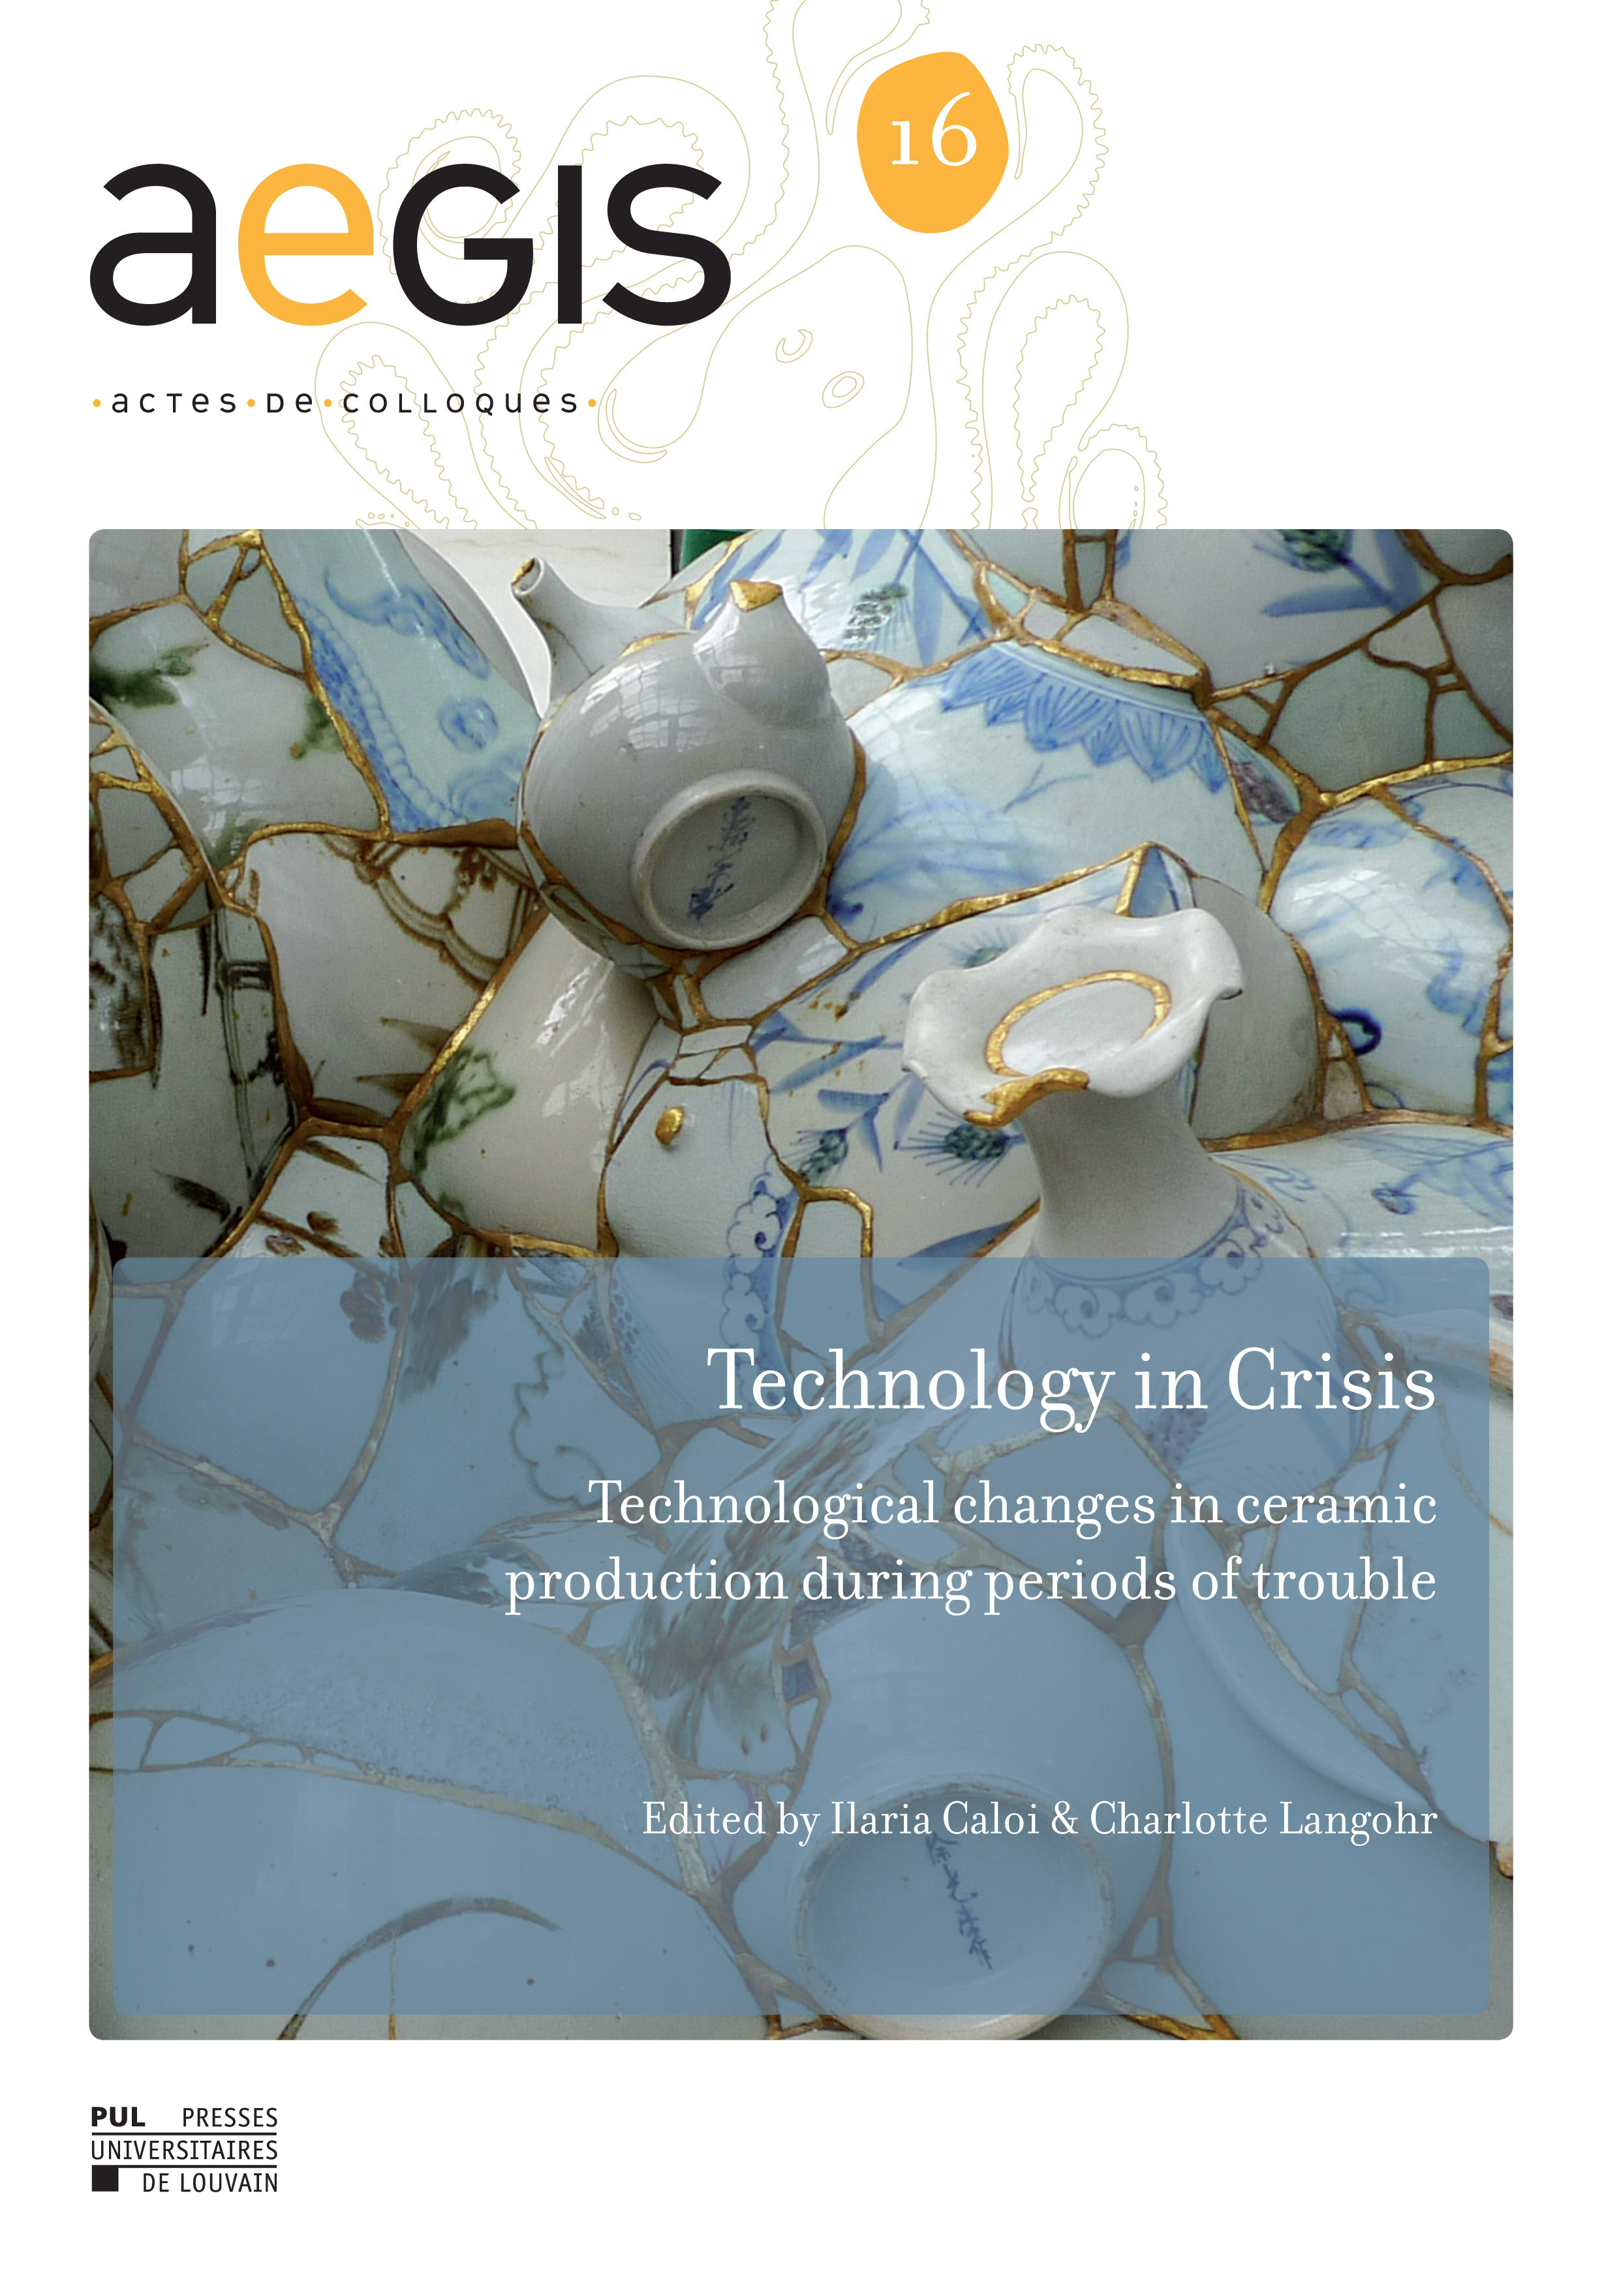 TECHNOLOGY IN CRISIS - TECHNOLOGICAL CHANGES IN CERAMIC PRODUCTION DURING PERIODS OF TROUBLE